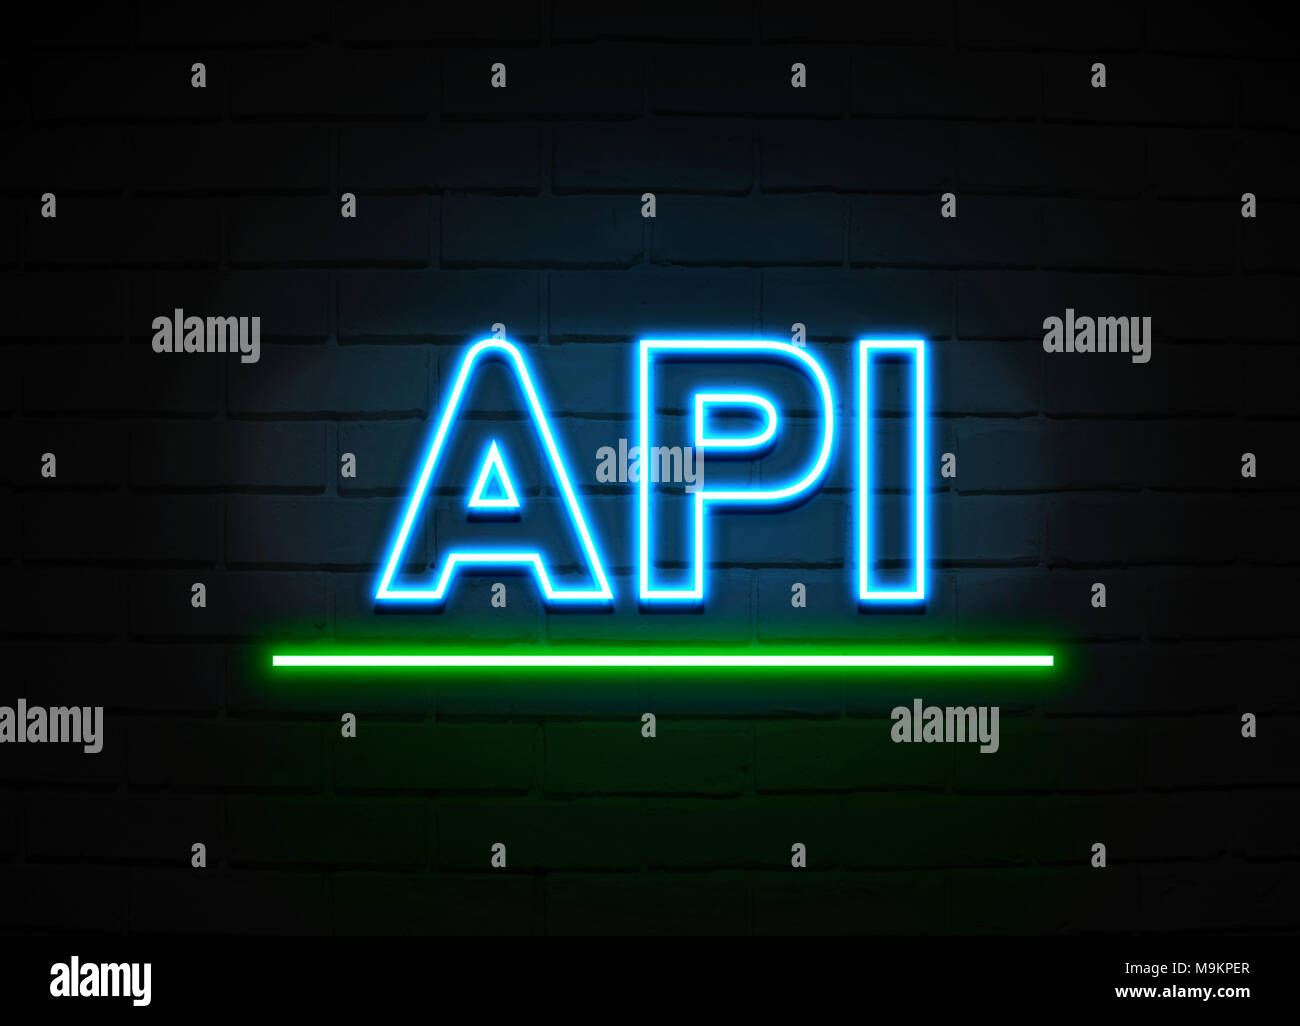 Api neon sign - Glowing Neon Sign on brickwall wall - 3D